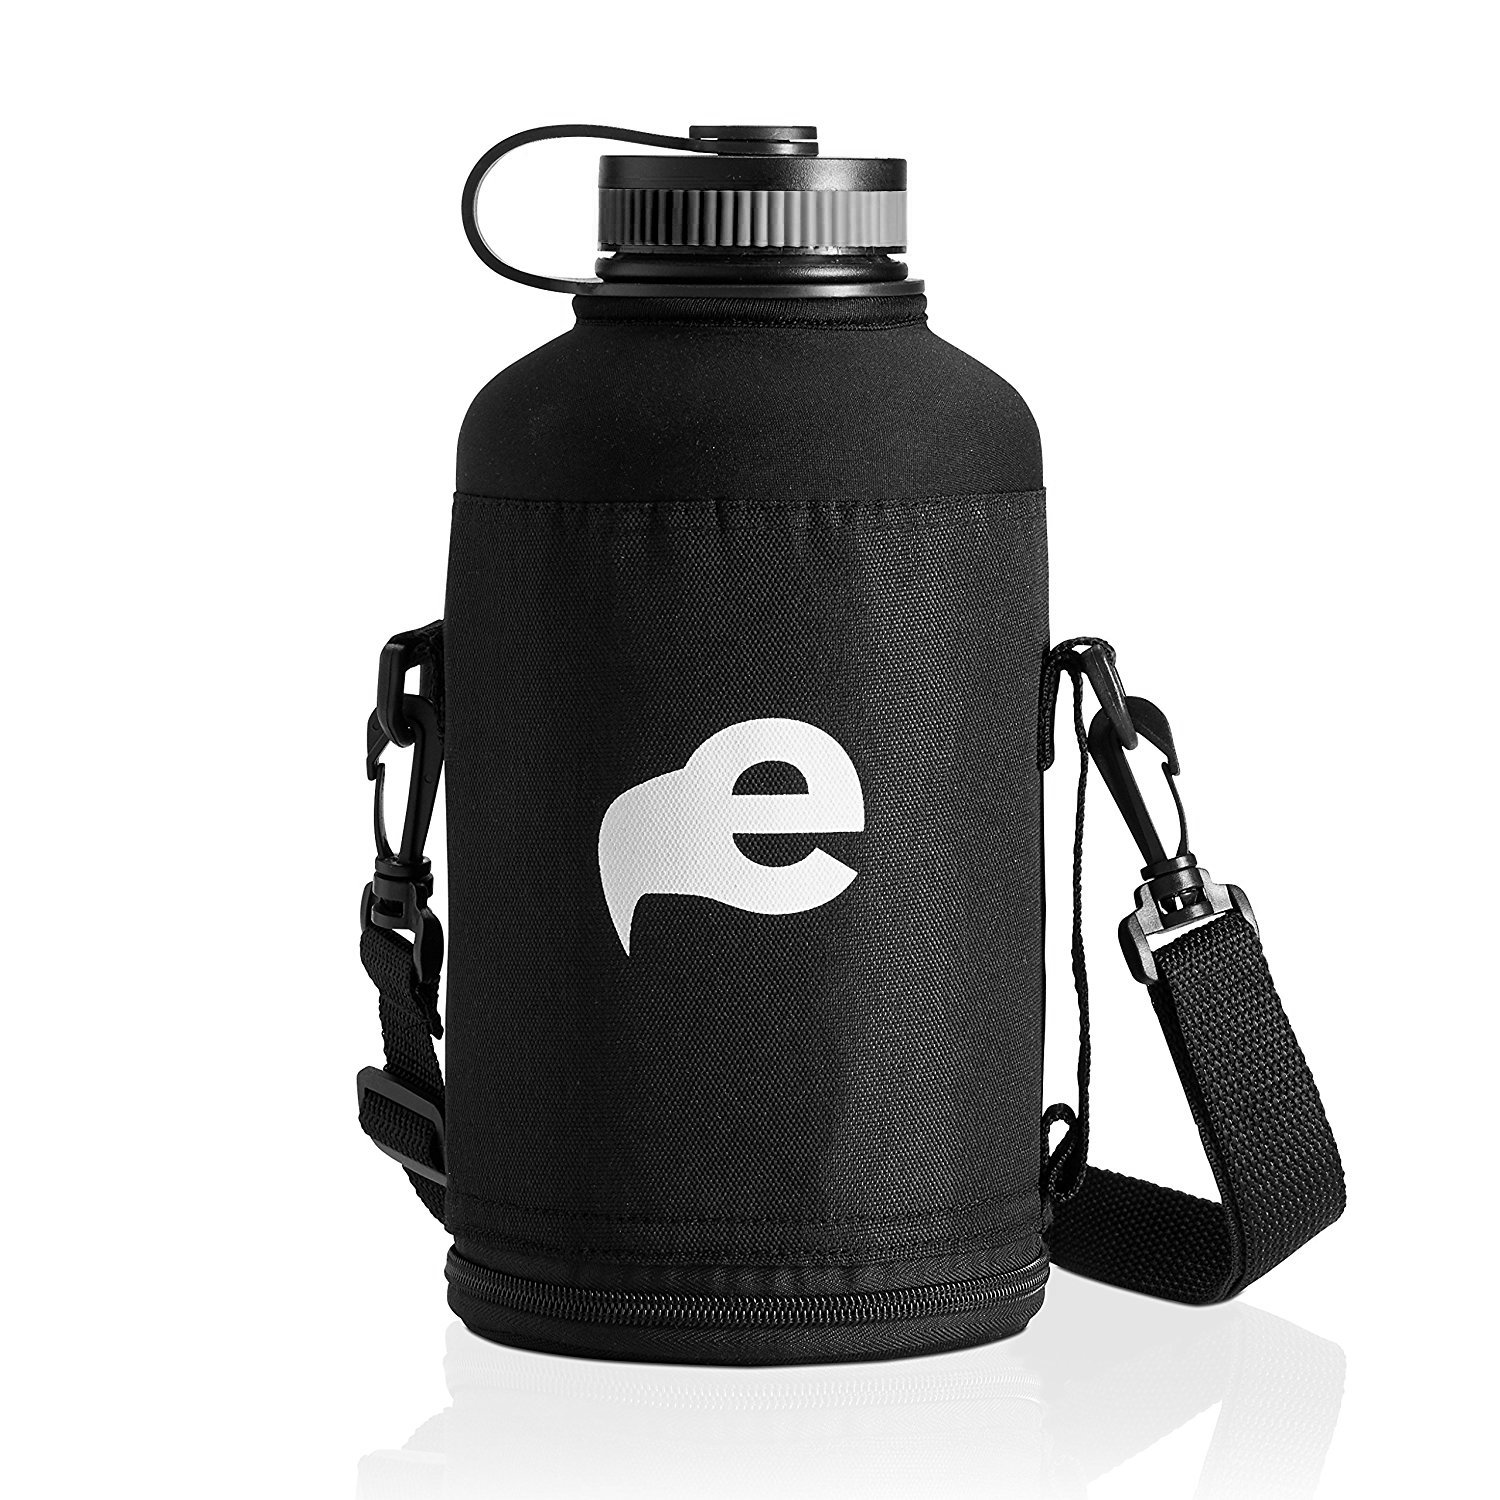 eegl Stainless Steel Insulated Beer Growler - 64 oz Water Bottle - Includes Carry Case - Double Wall Vacuum Sealed Wide Mouth Design. Five Year Guarantee! Perfect Temperature Control from by eegl (Image #3)